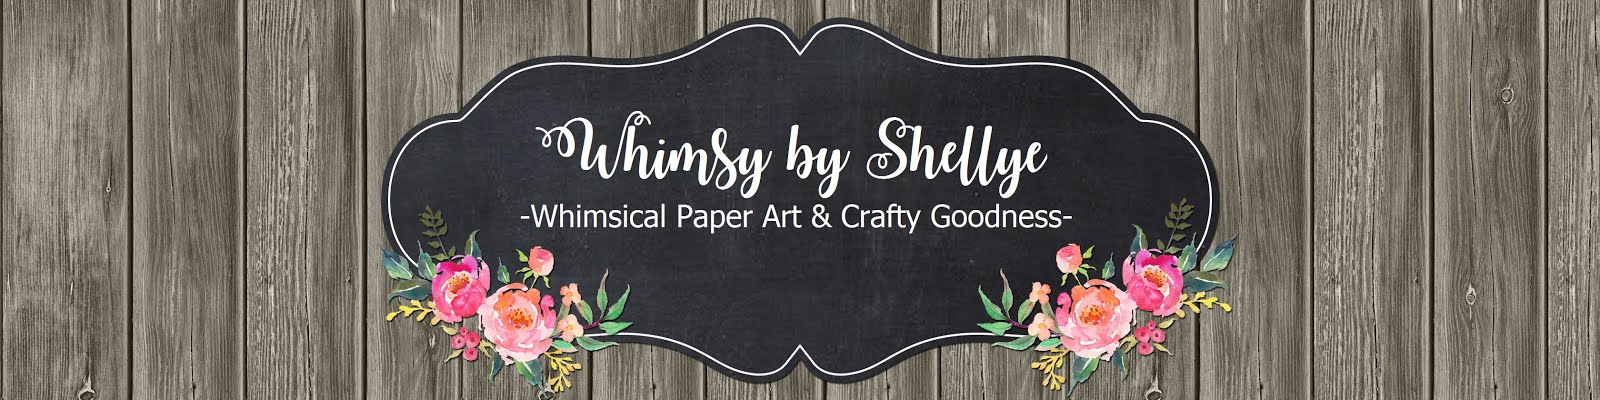 Whimsy by Shellye